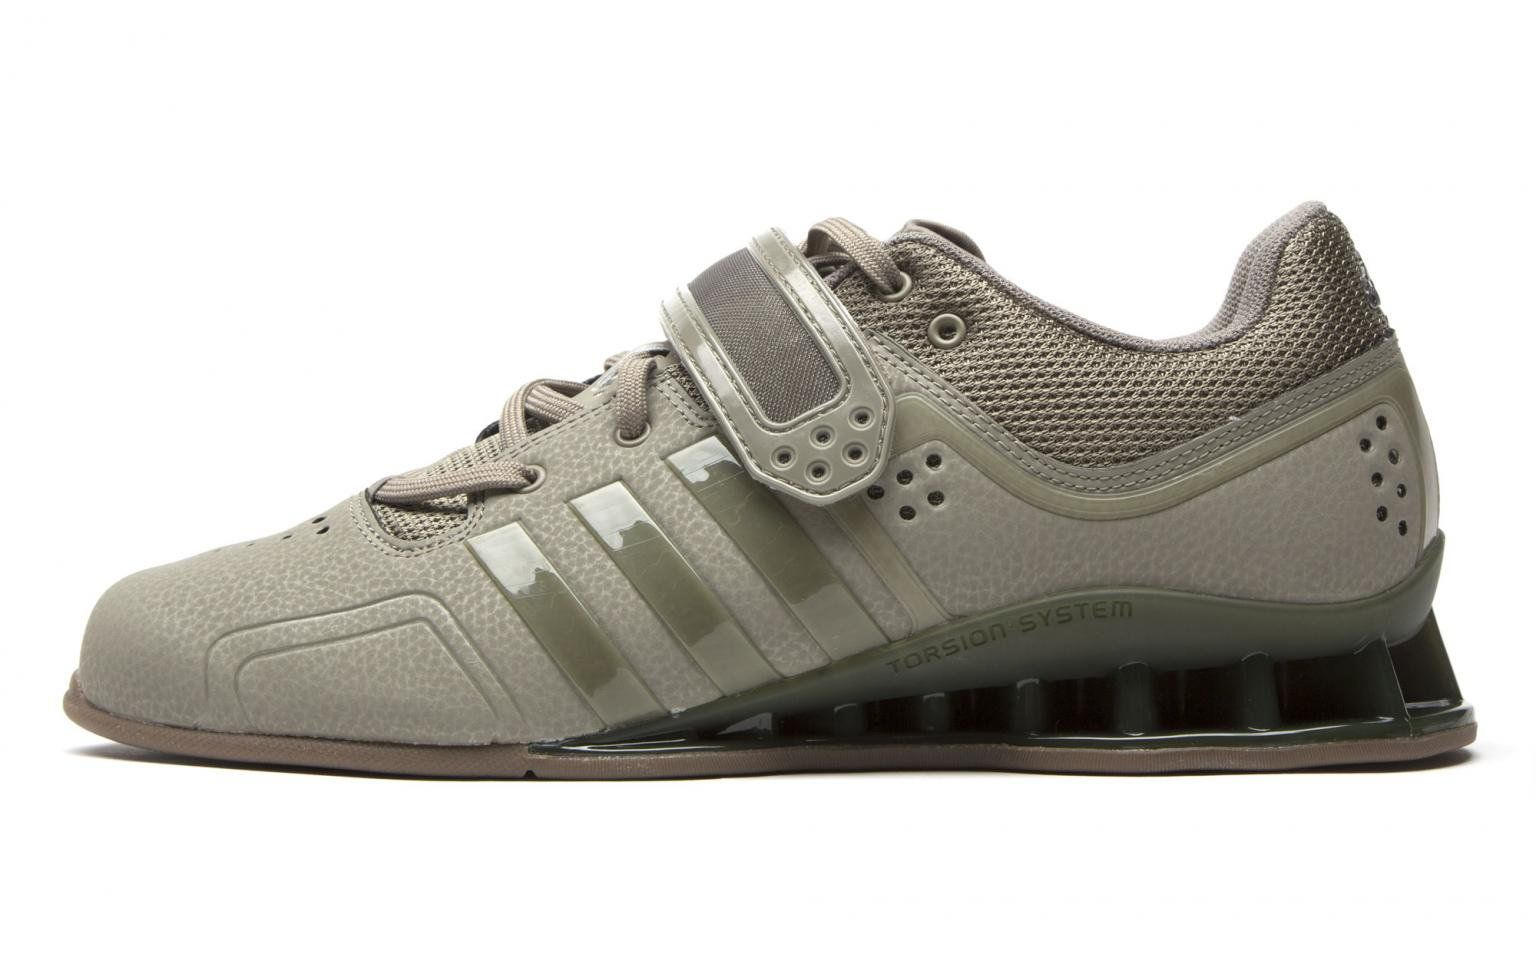 online store 1dbfb 91f83 Adipower Weightlifting Shoe - Trace Cargo + Gum 5  Rogue Fitness